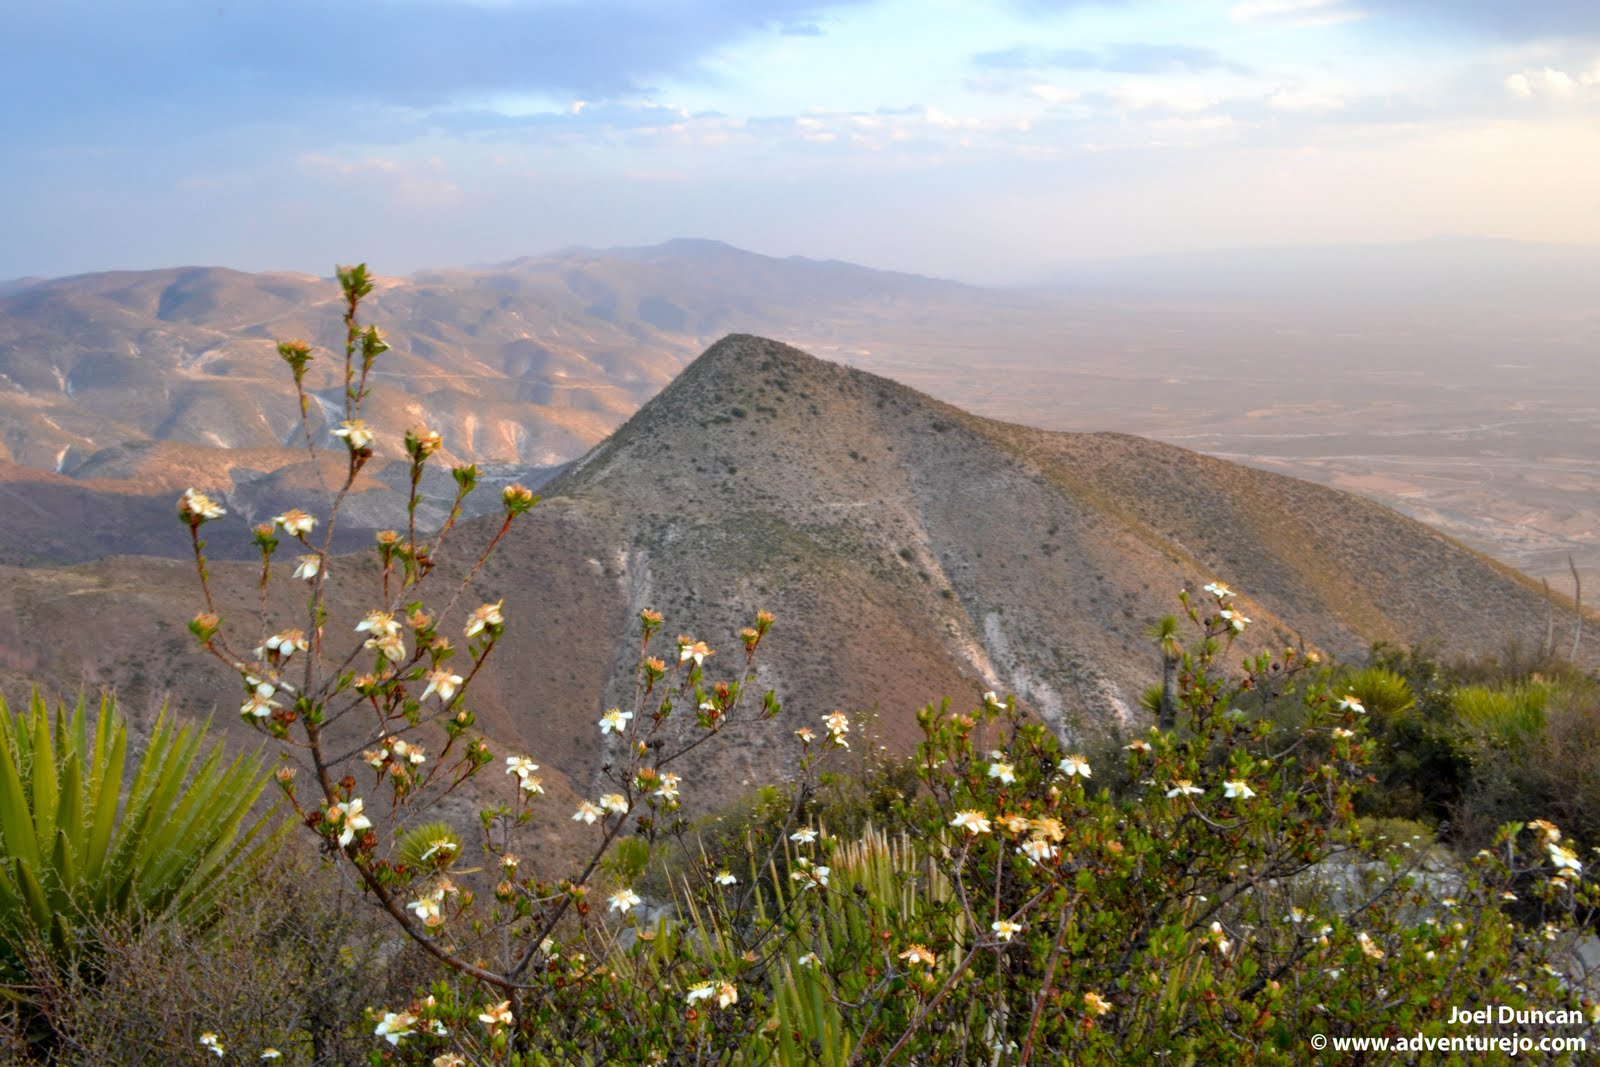 Real de Catorce – A Little Mountain Town With REAL BIG Charm